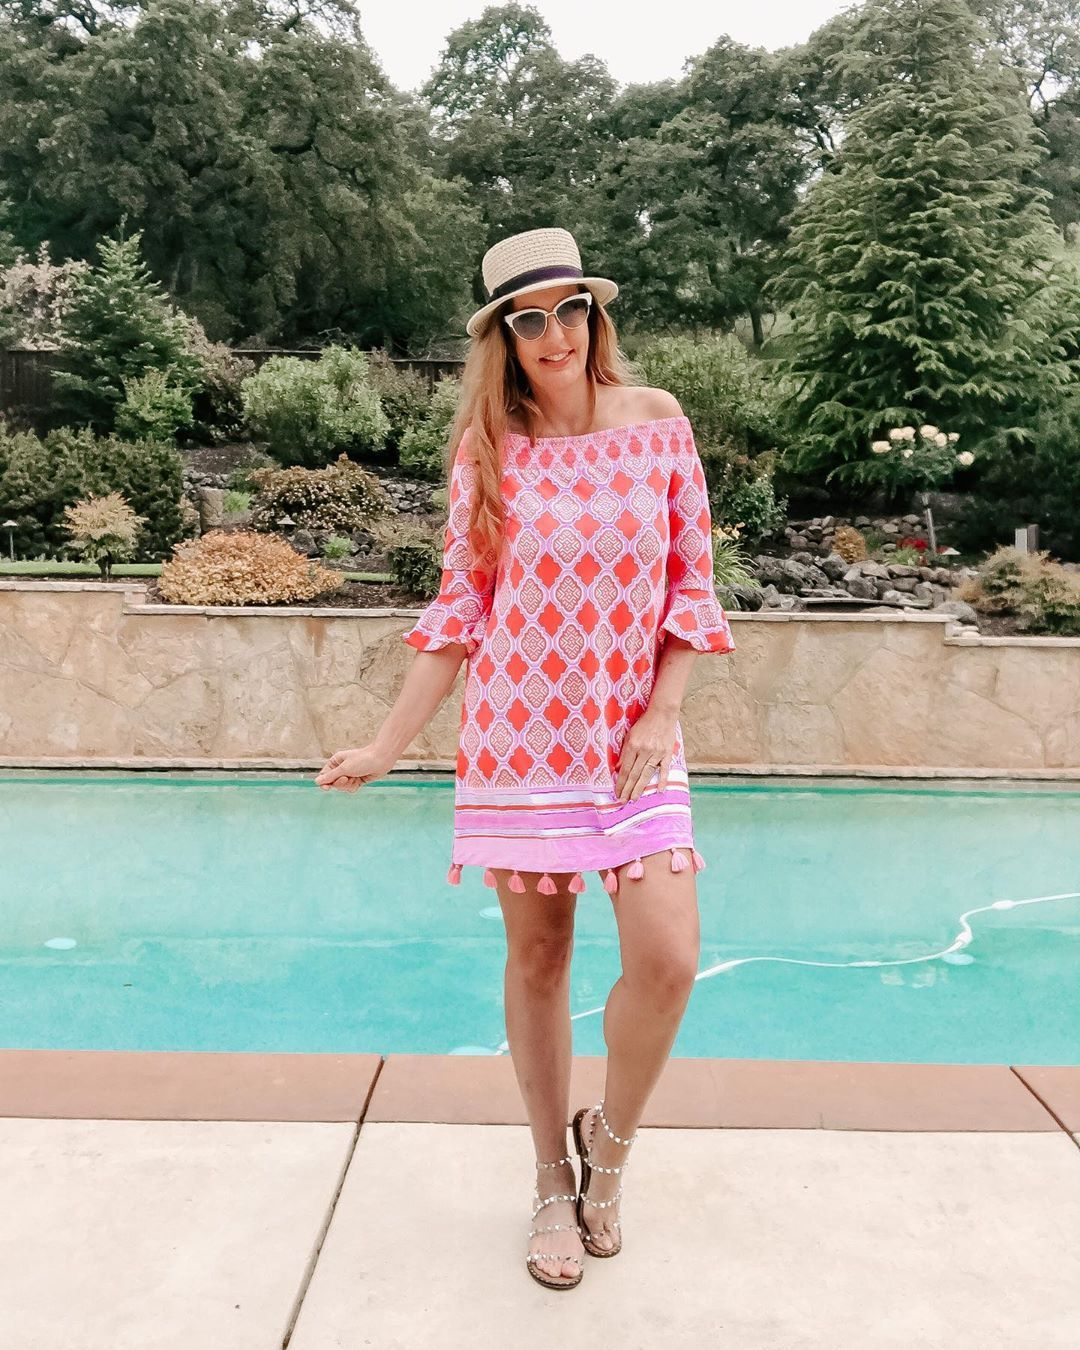 40plusstyle On Instagram Summer Fashion Fashion Over 40 Style [ 1350 x 1080 Pixel ]